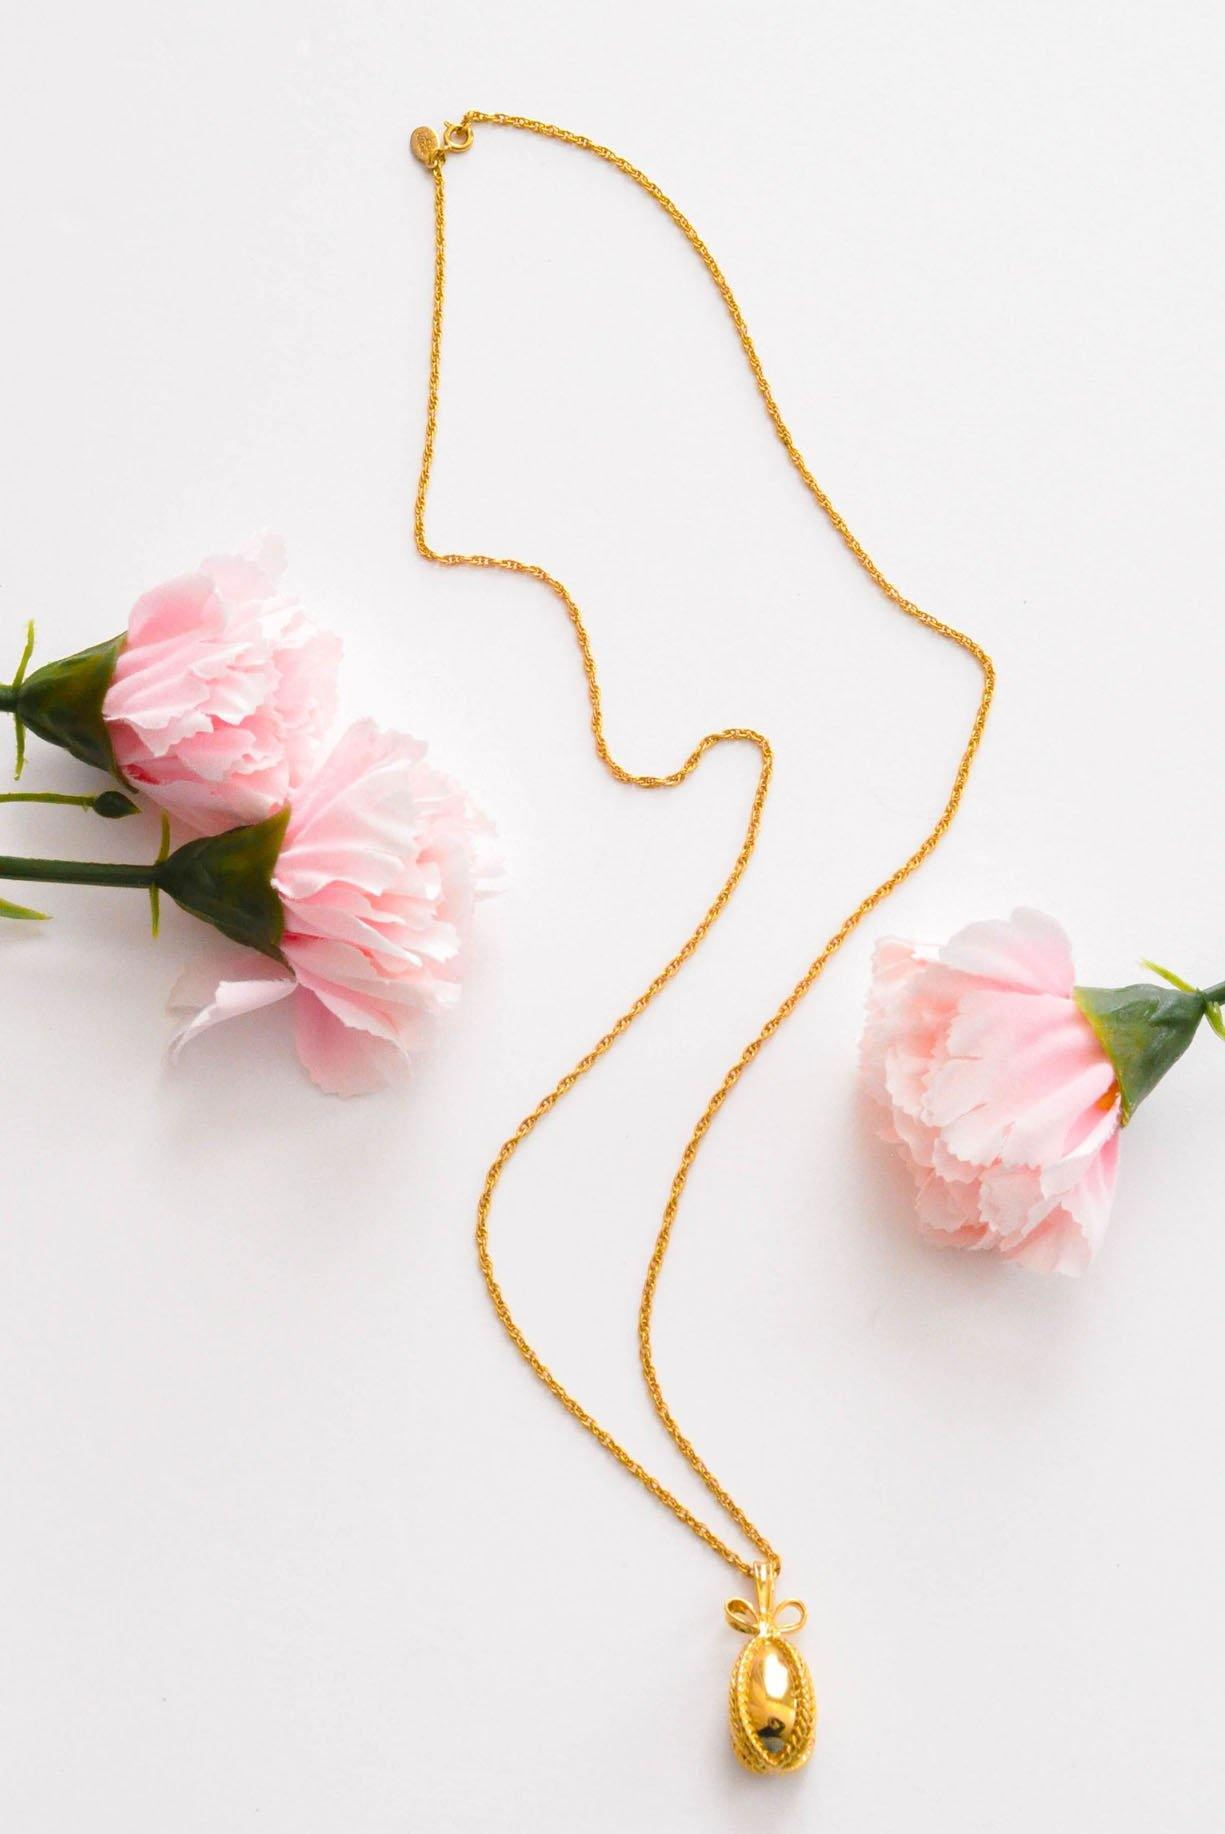 Dainty Egg Drop Necklace - Sweet & Spark